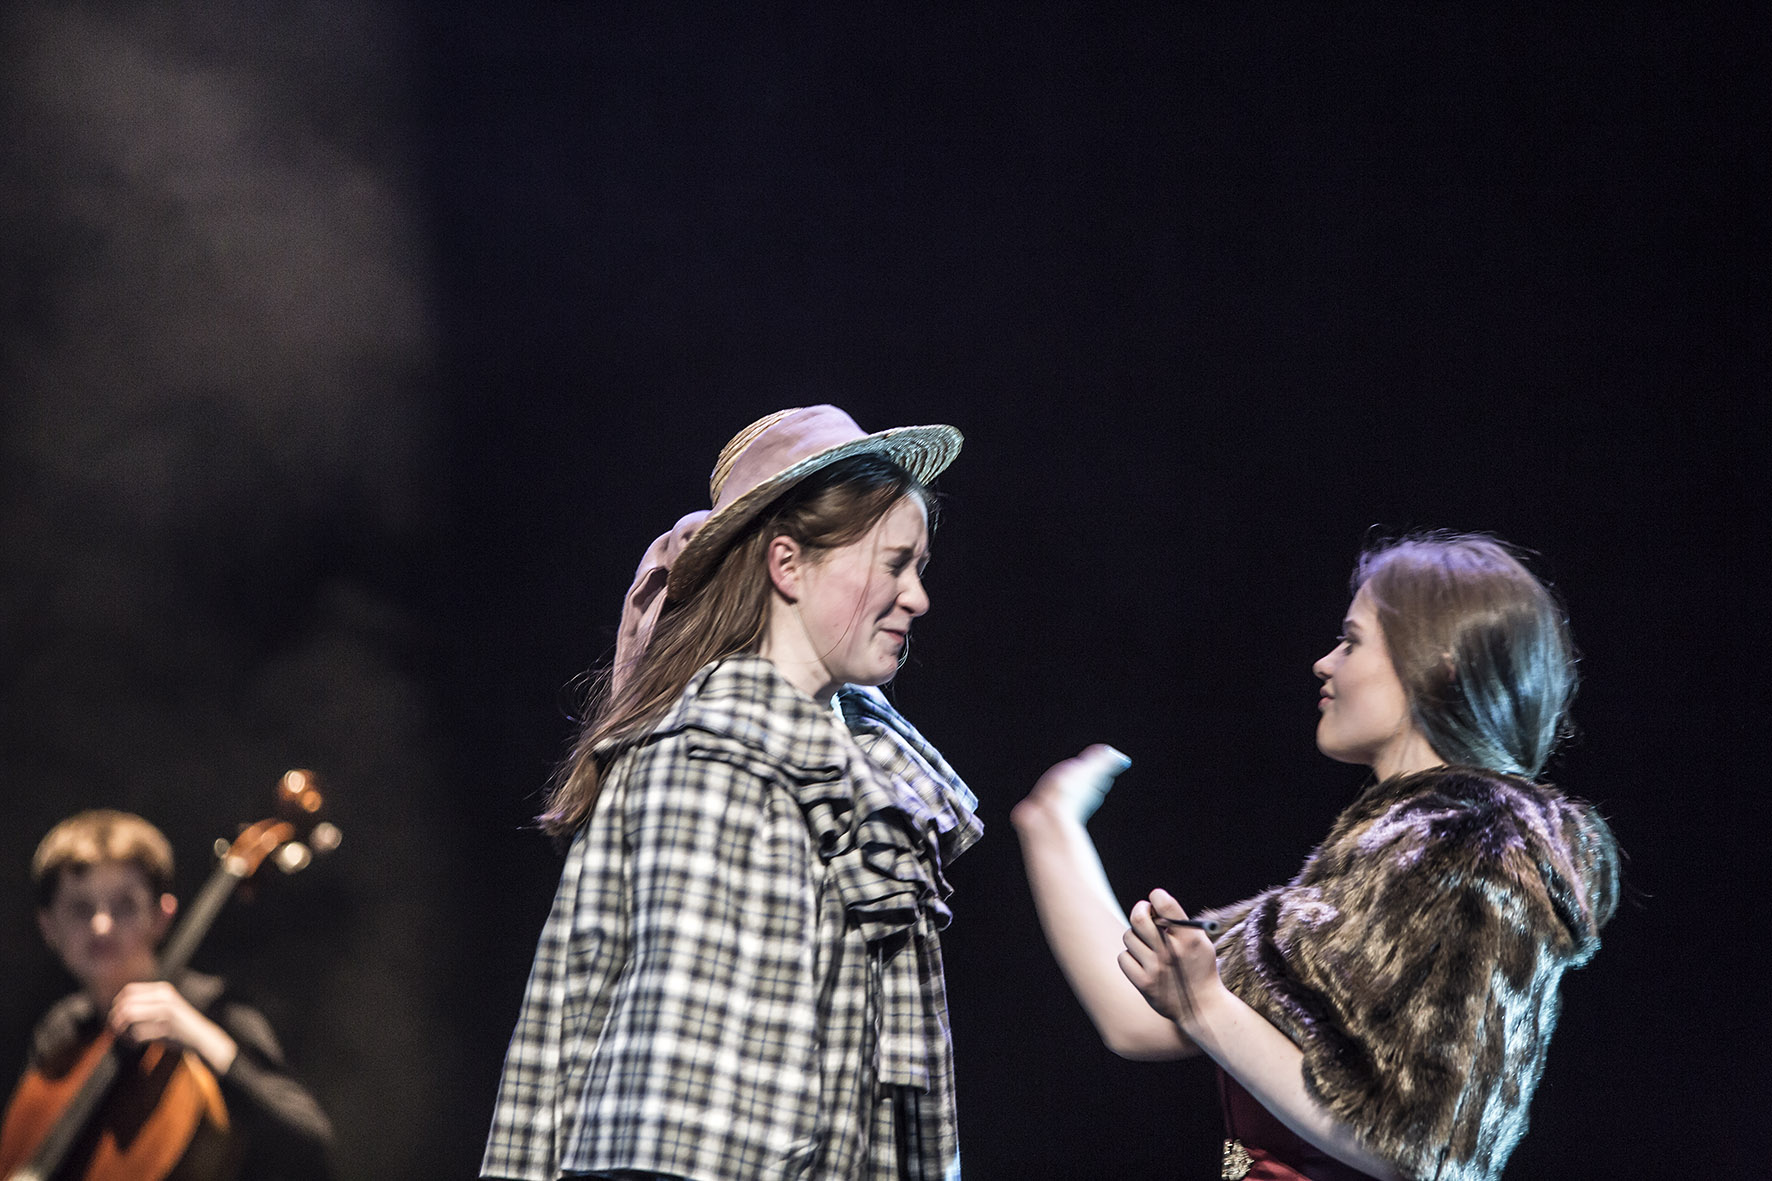 Alanna Sweeney and Shannon Wilkin in An Grianan Youth Theatre's The Wolves of Willoughby Chase. April 2018. Photo by Paul McGuckin. All rights reserved.